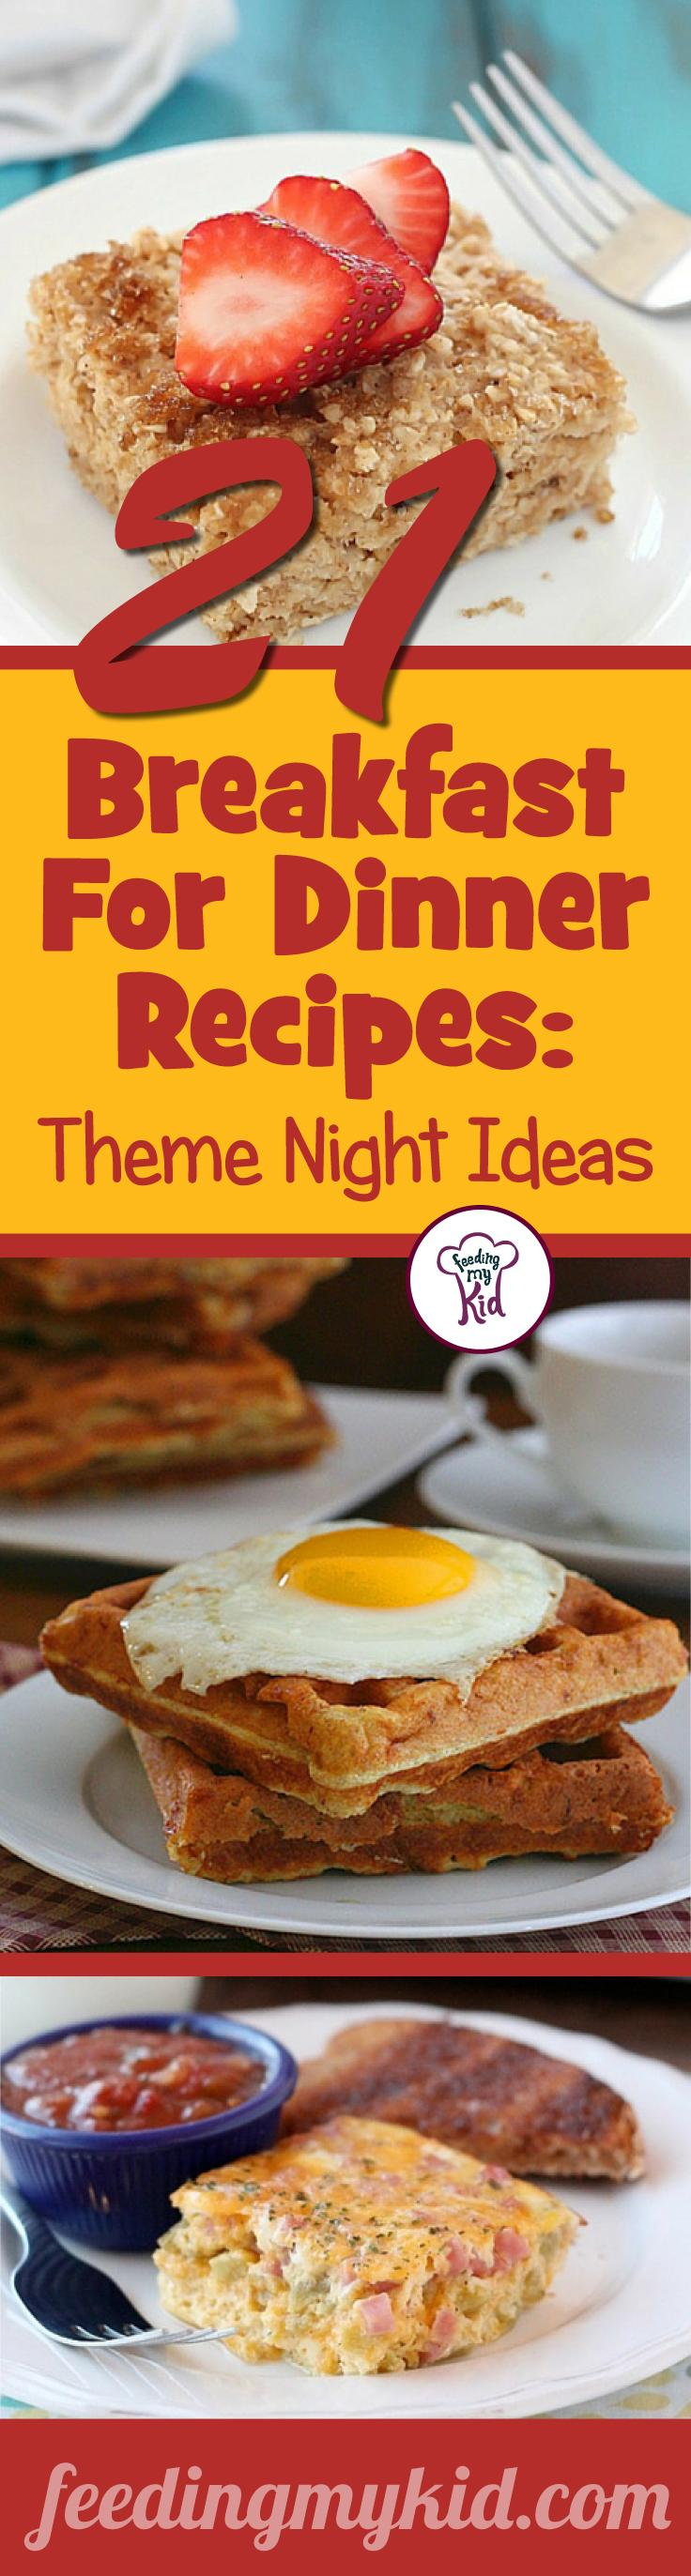 This is a must pin! Try these great breakfast for dinner recipes! Feeding My Kid is a great website for parents, filled with all the information you need about how to raise your kids, from healthy tips to nutritious recipes.